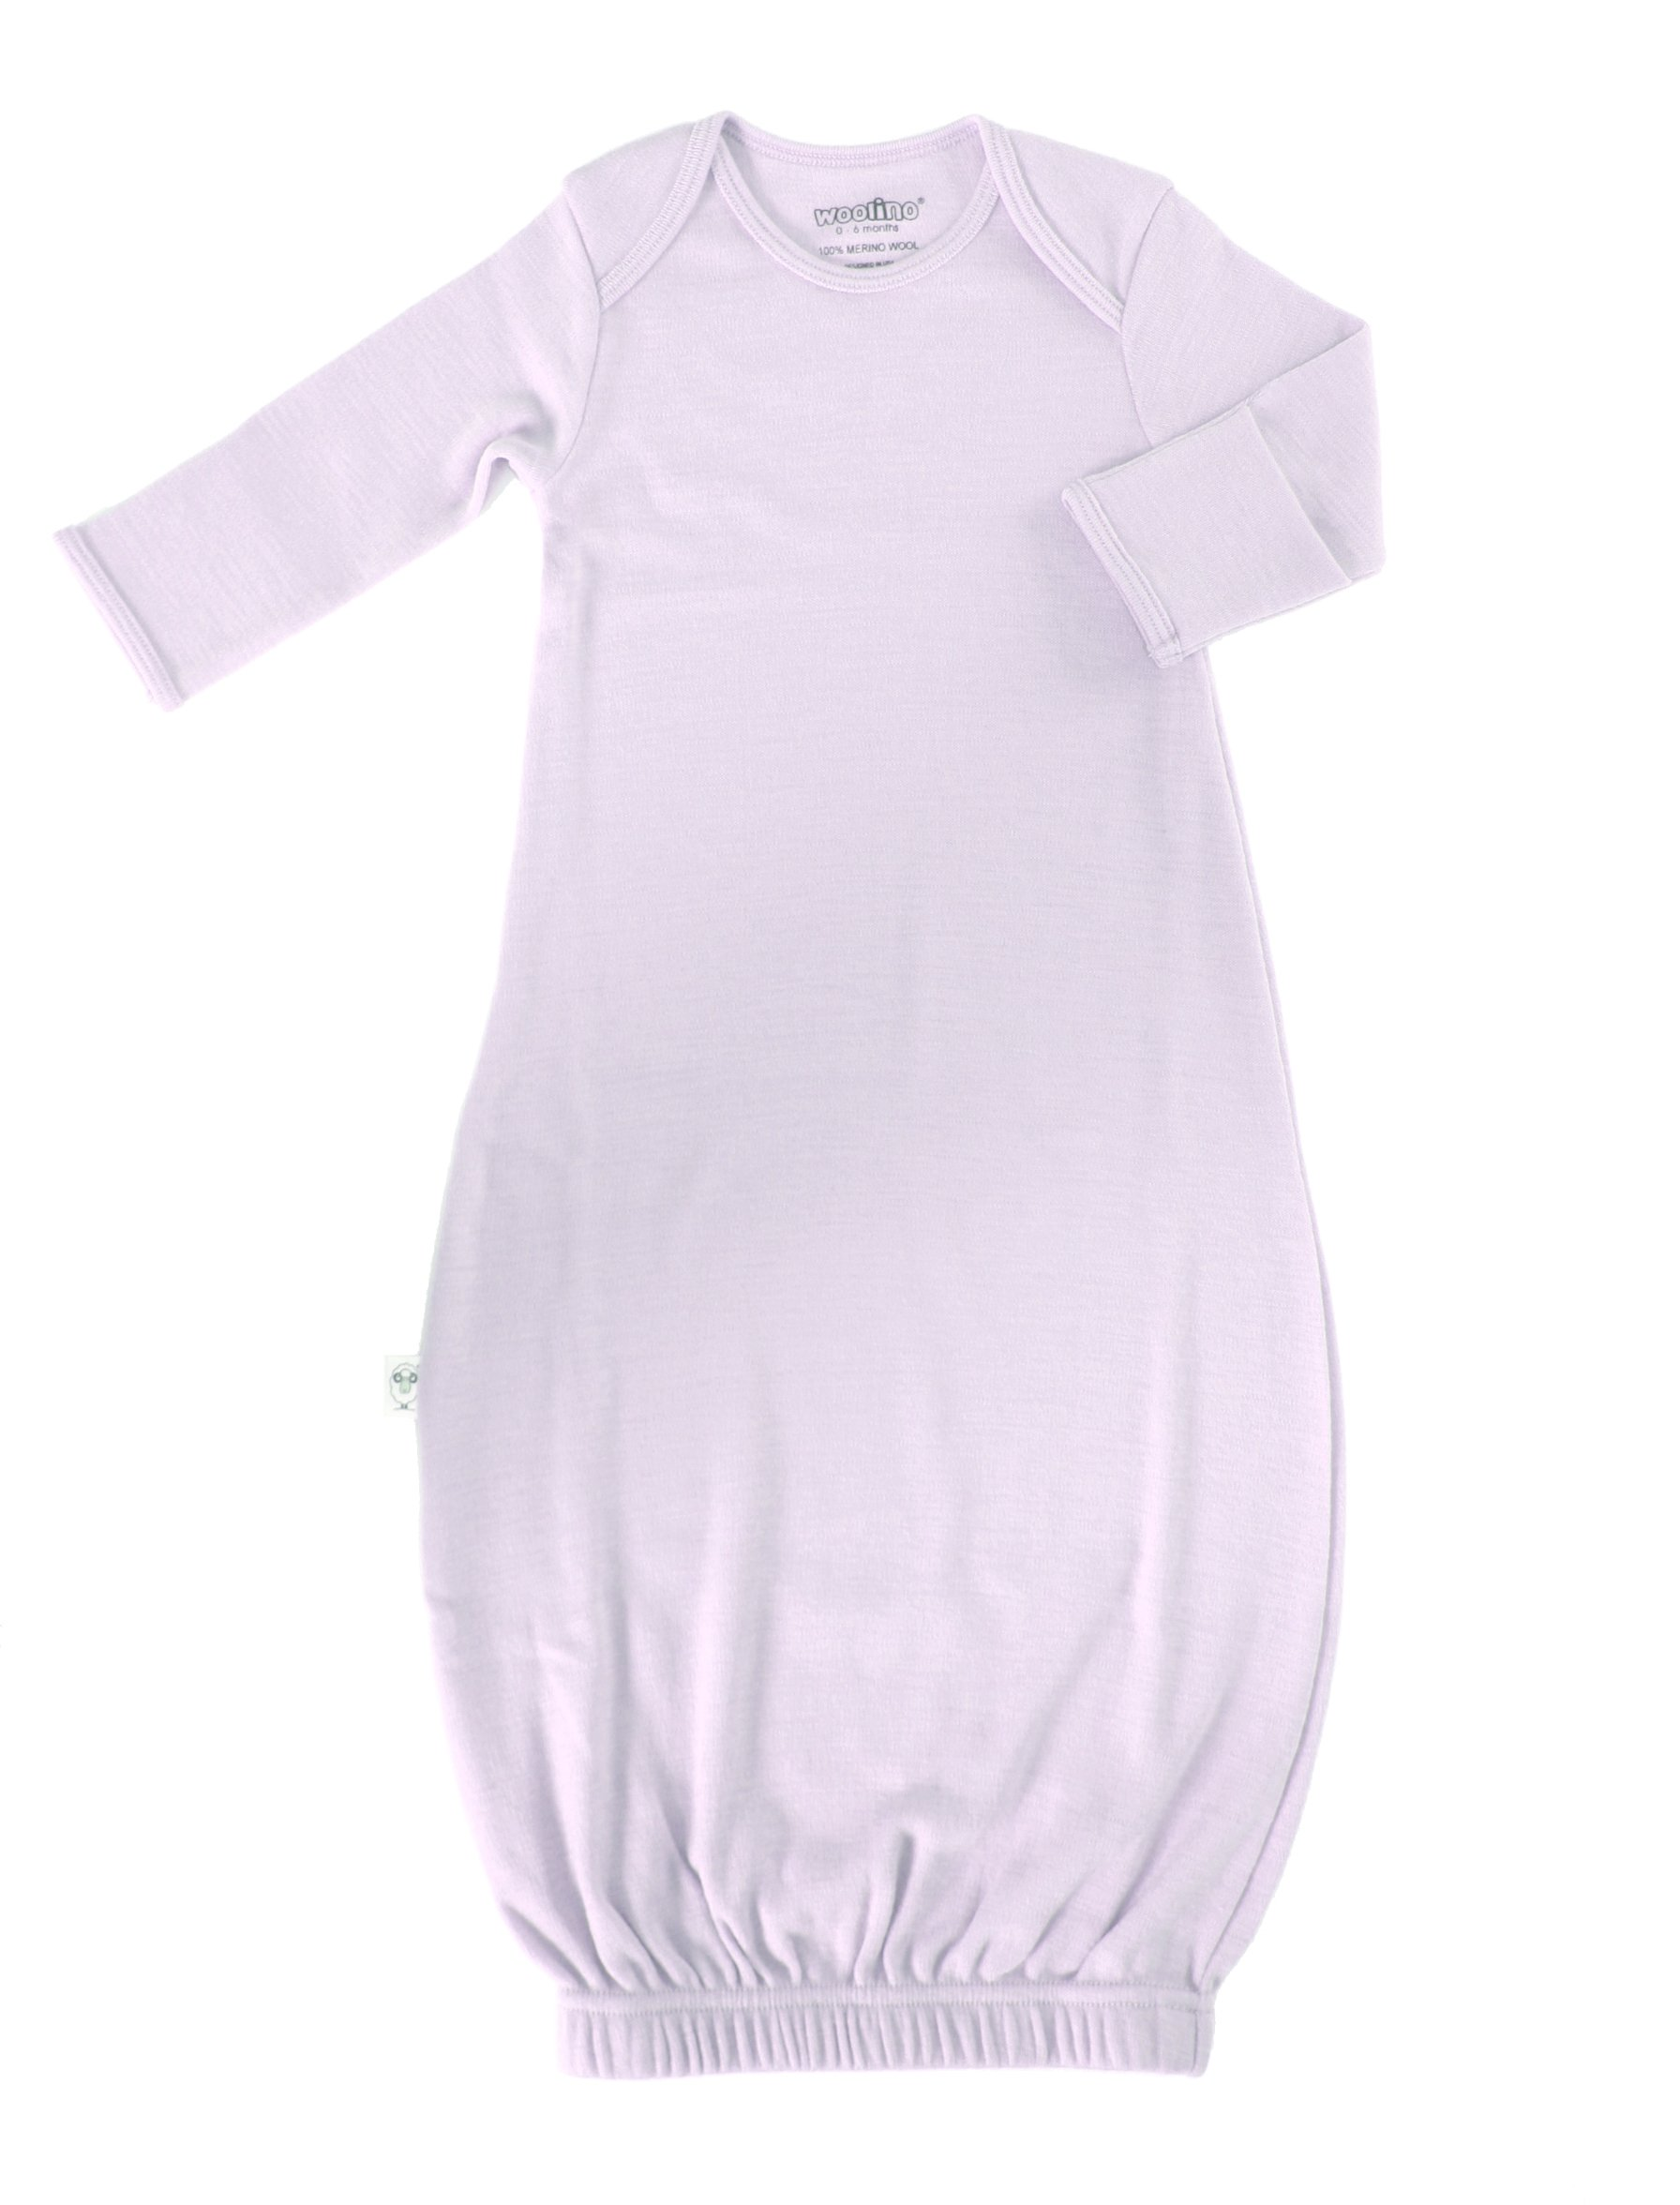 Woolino Infant Gown,100% Superfine Merino Wool, 0-6 Months, Lilac by Woolino